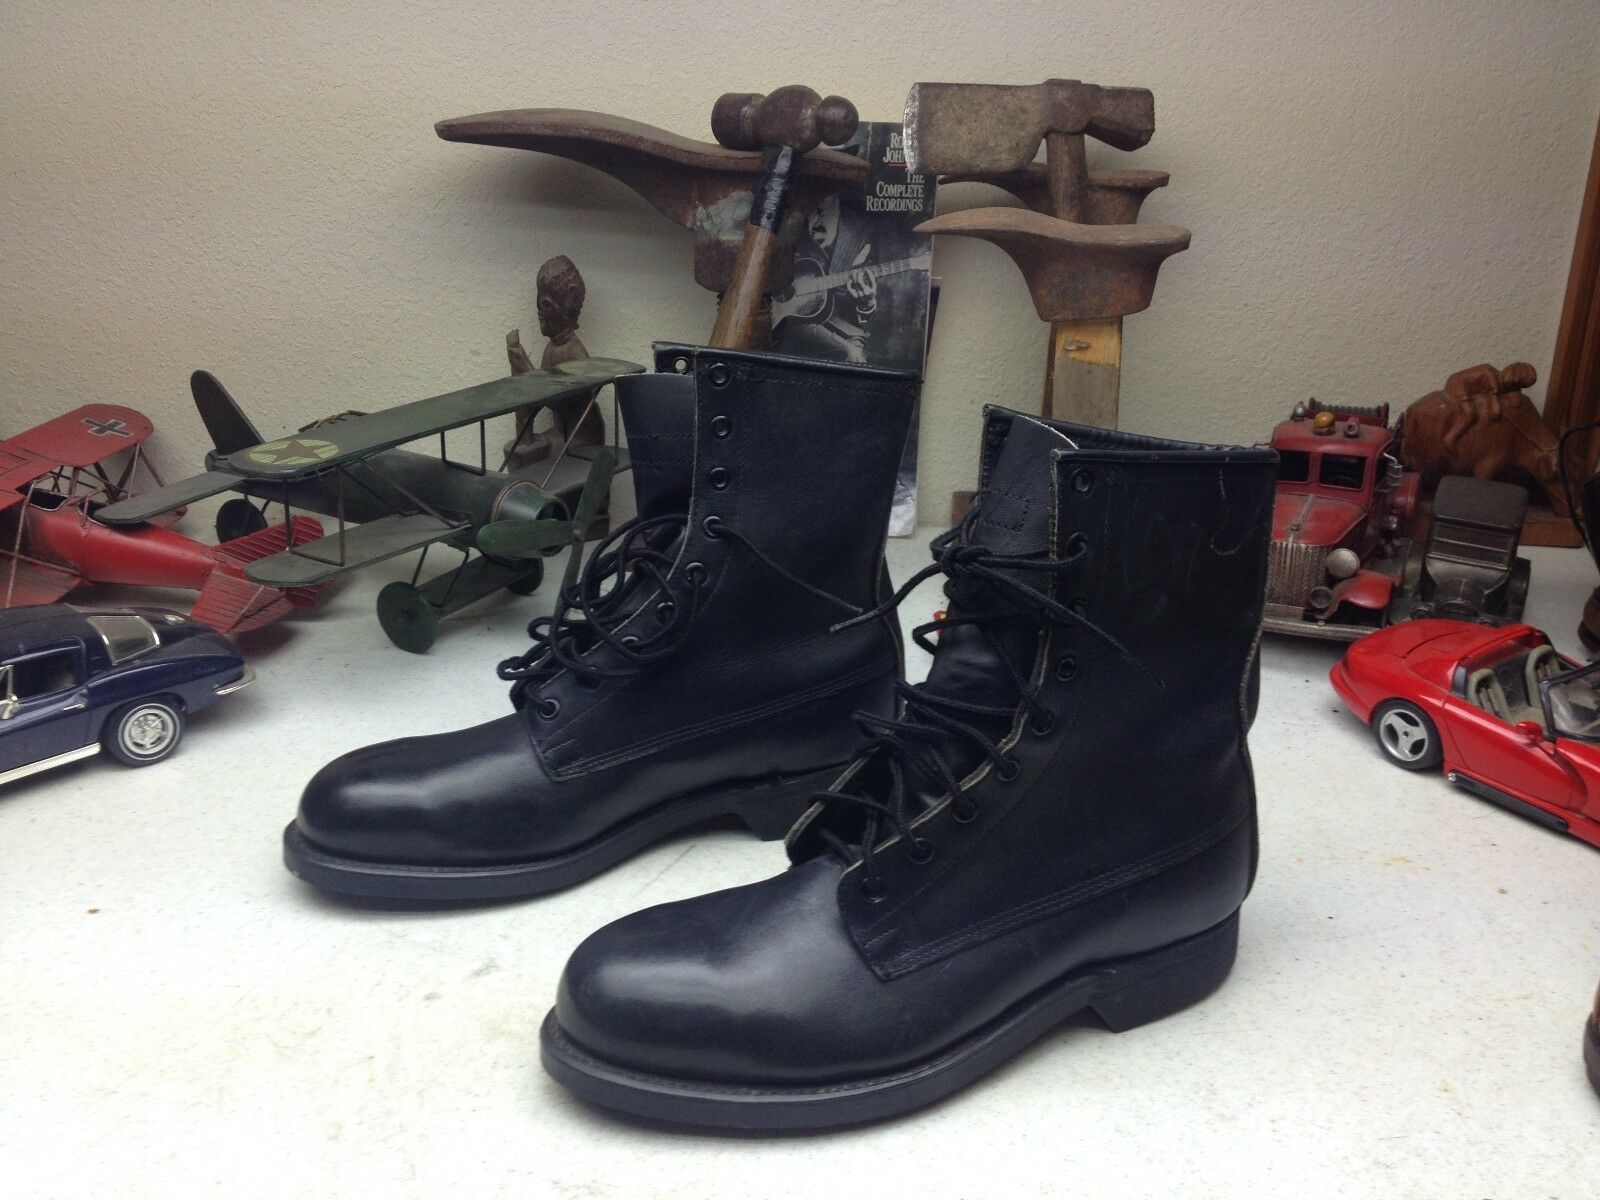 1990 ADDISON schwarz schwarz schwarz LEATHER STEEL TOE MILITARY POLICE MOTORCYCLE ROAD Stiefel 6.5 D 5b30fd